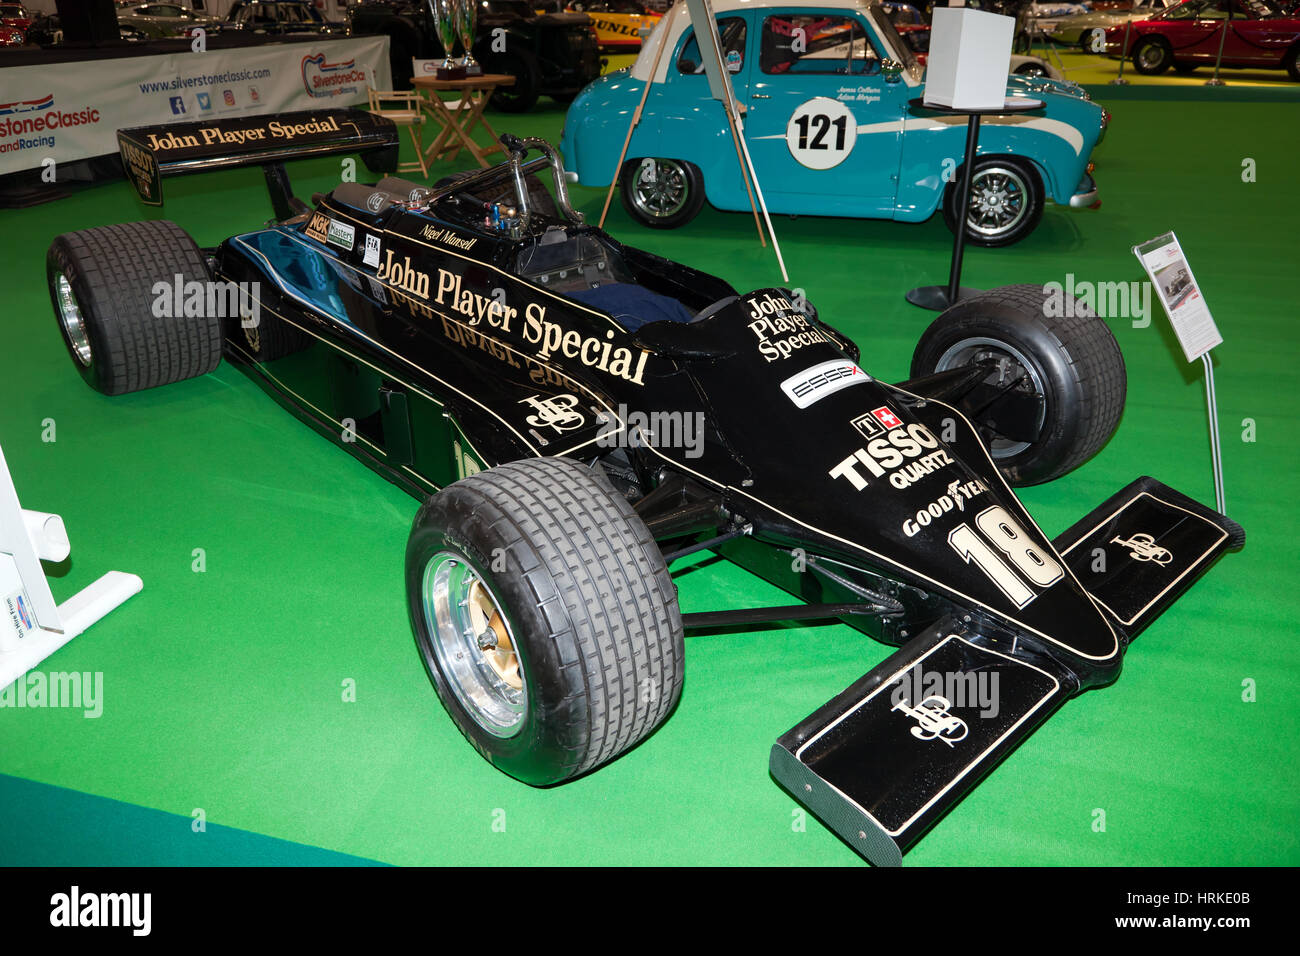 A 1981 Lotus 87 Formula One Car,  driven by Nigel Mansell,  during his first F1 Season. On display at Historic Motorsport - Stock Image